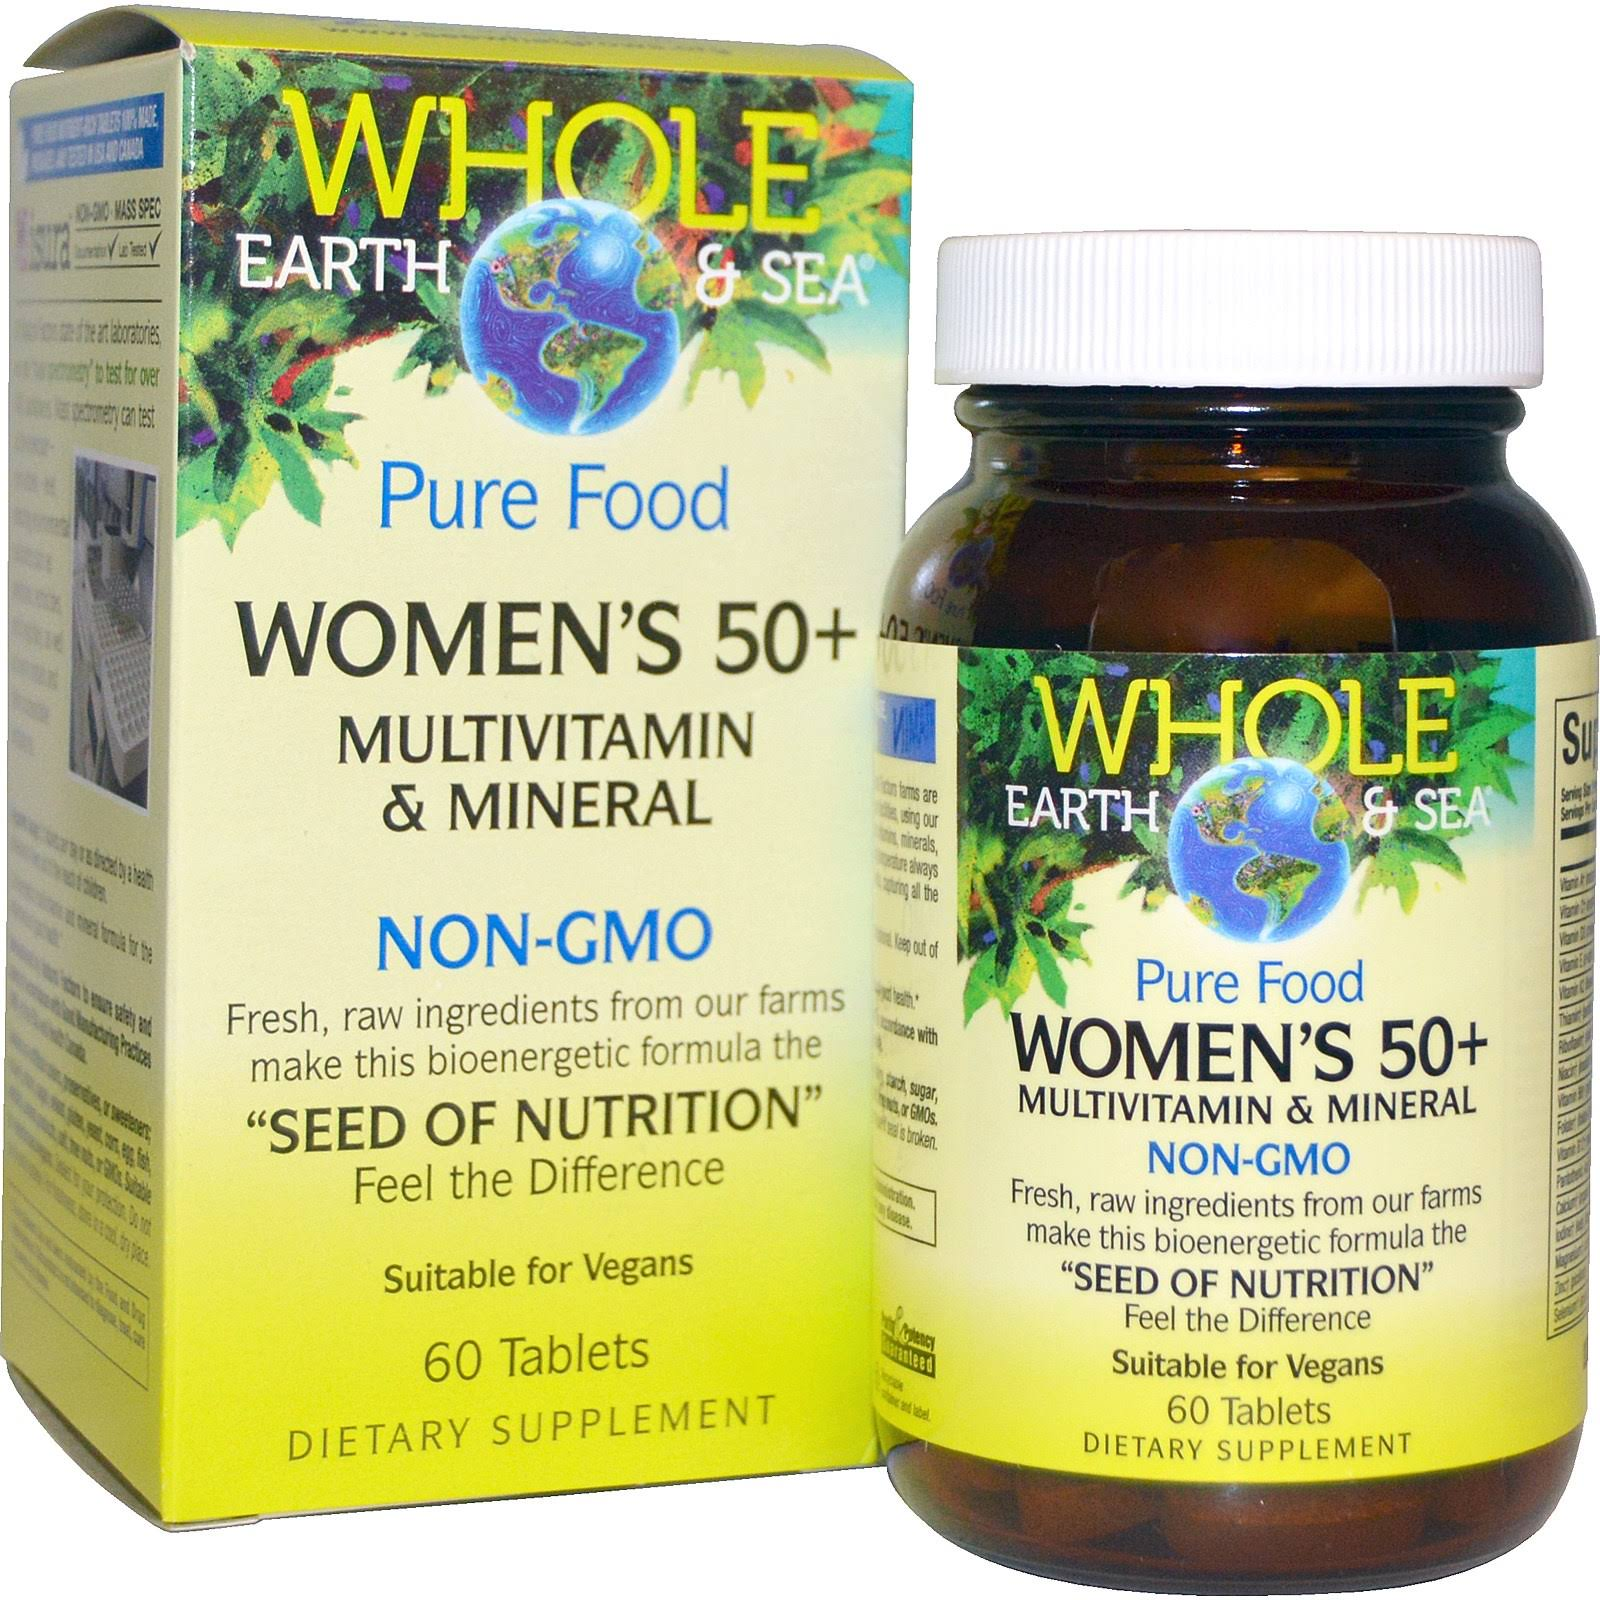 Whole Earth And Sea Women's 50+ Multivitamin And Mineral - 60 Tablets